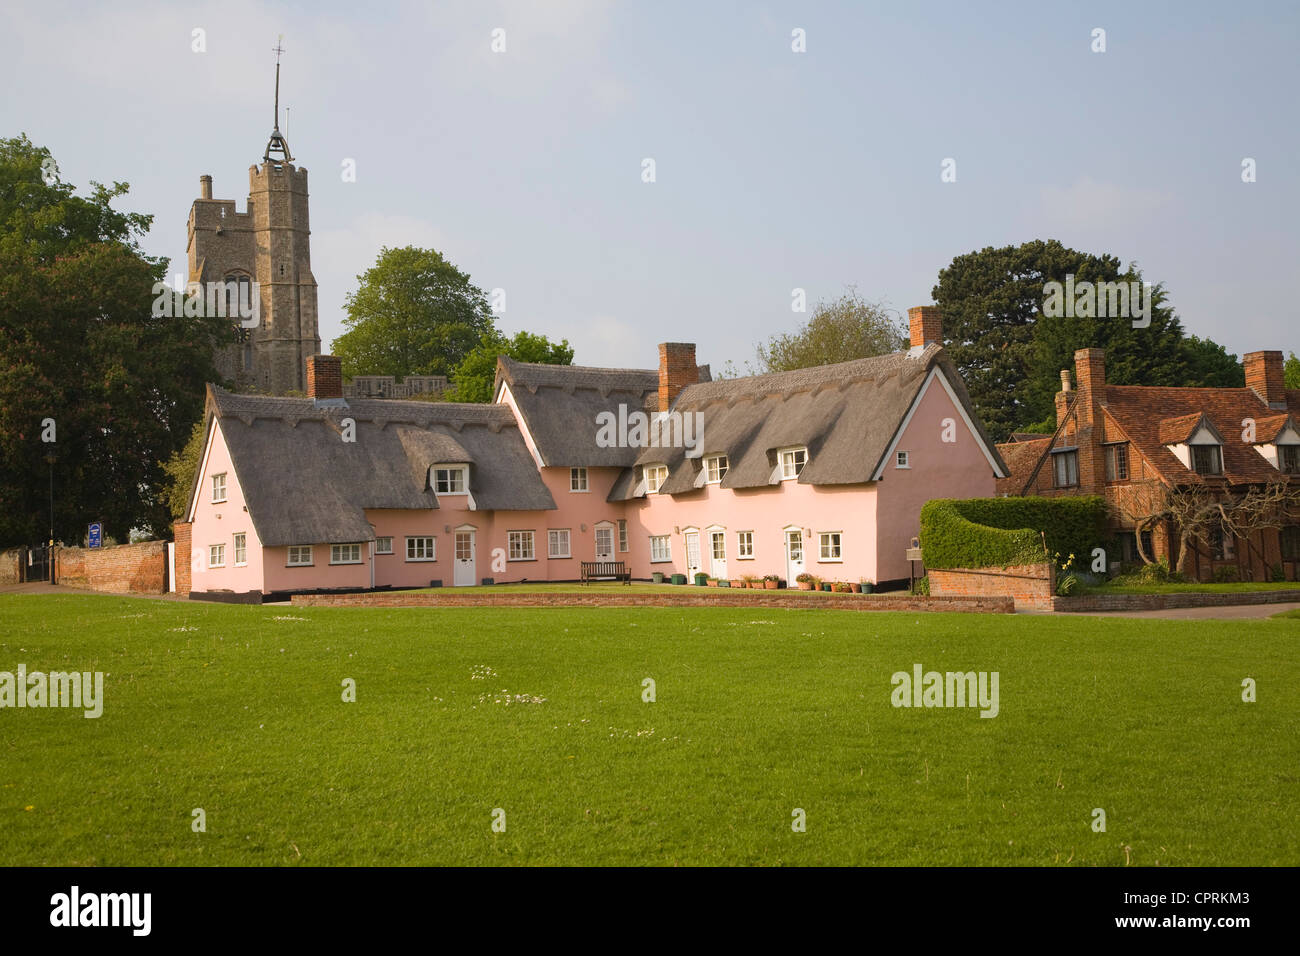 Pink cottages at Cavendish Suffolk England - Stock Image